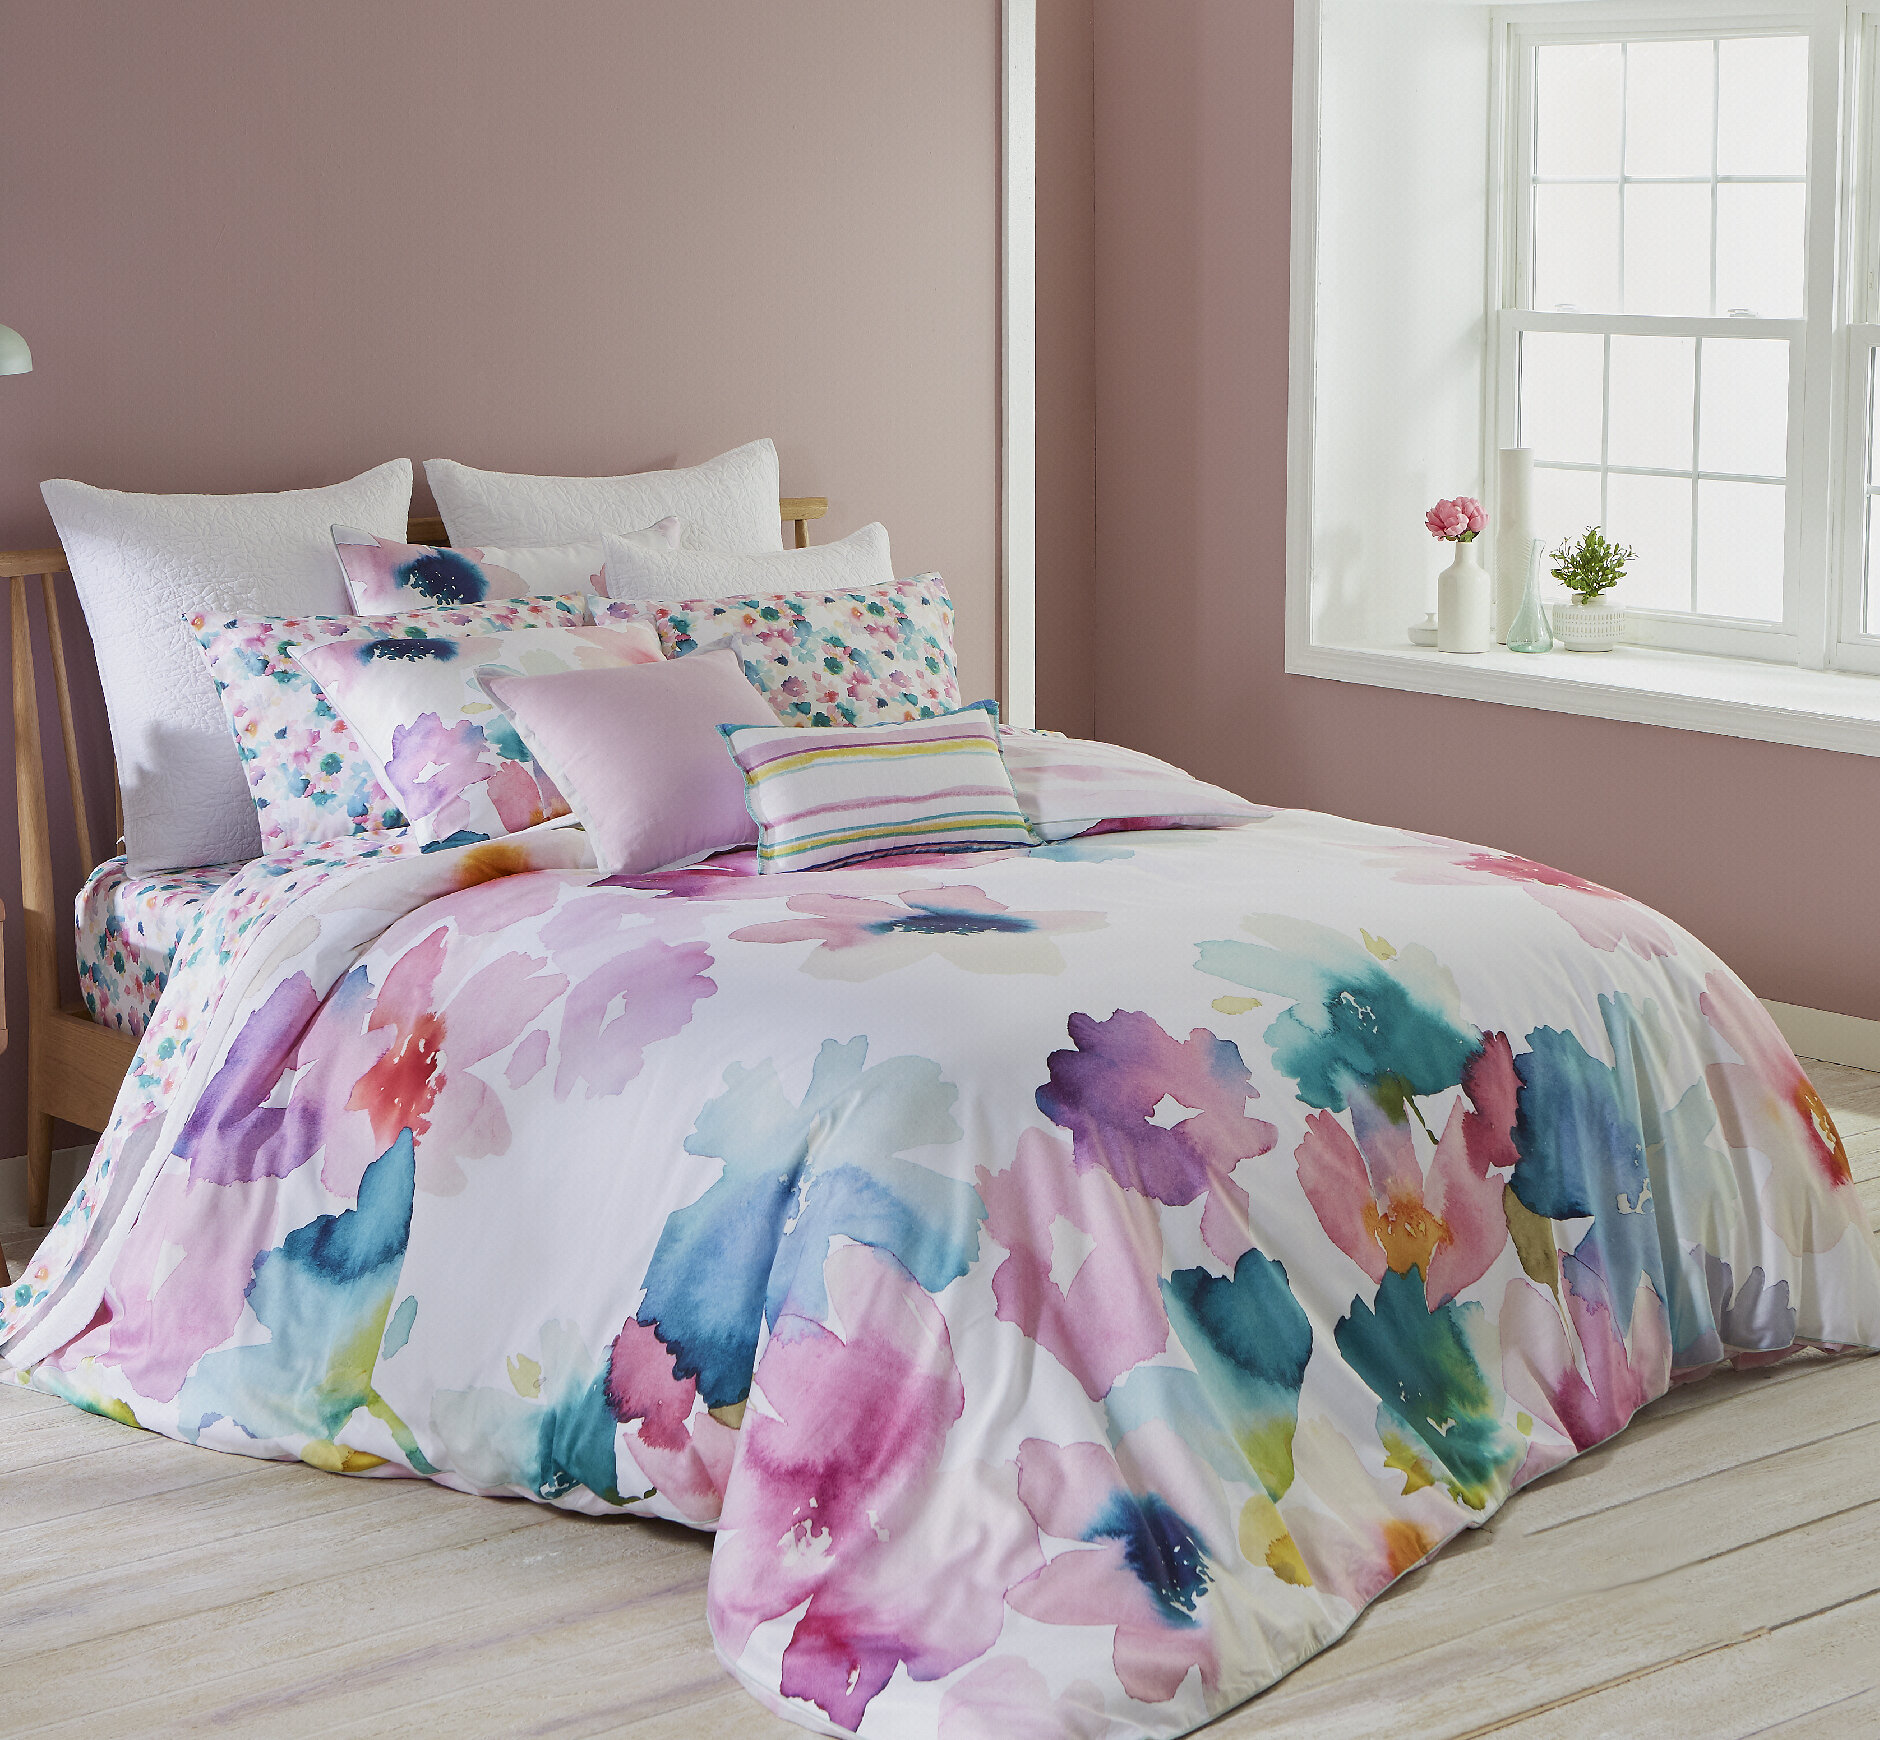 Superbe Bluebellgray Sanna 100% Cotton Bedding Set U0026 Reviews | Wayfair